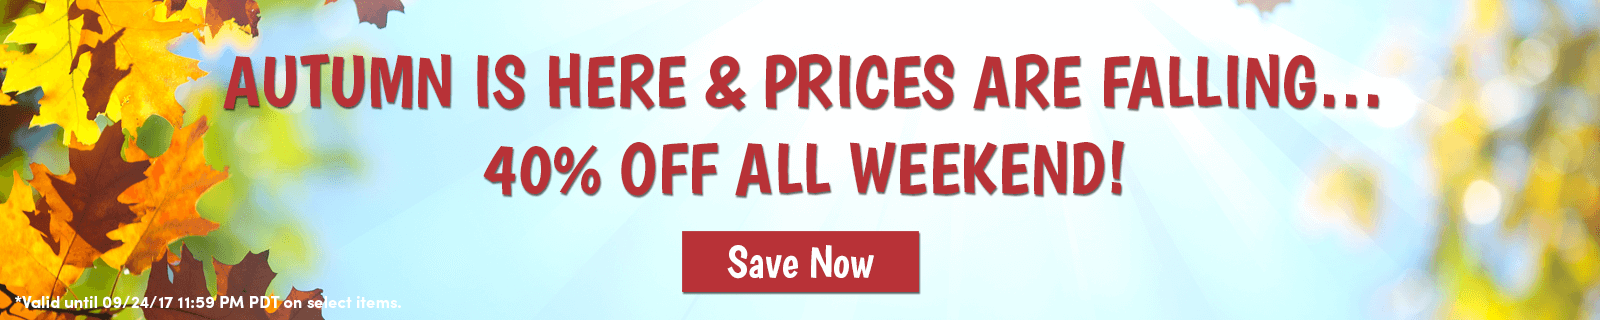 Autumn is here and prices are falling... 40% off all weekend! | Save Now